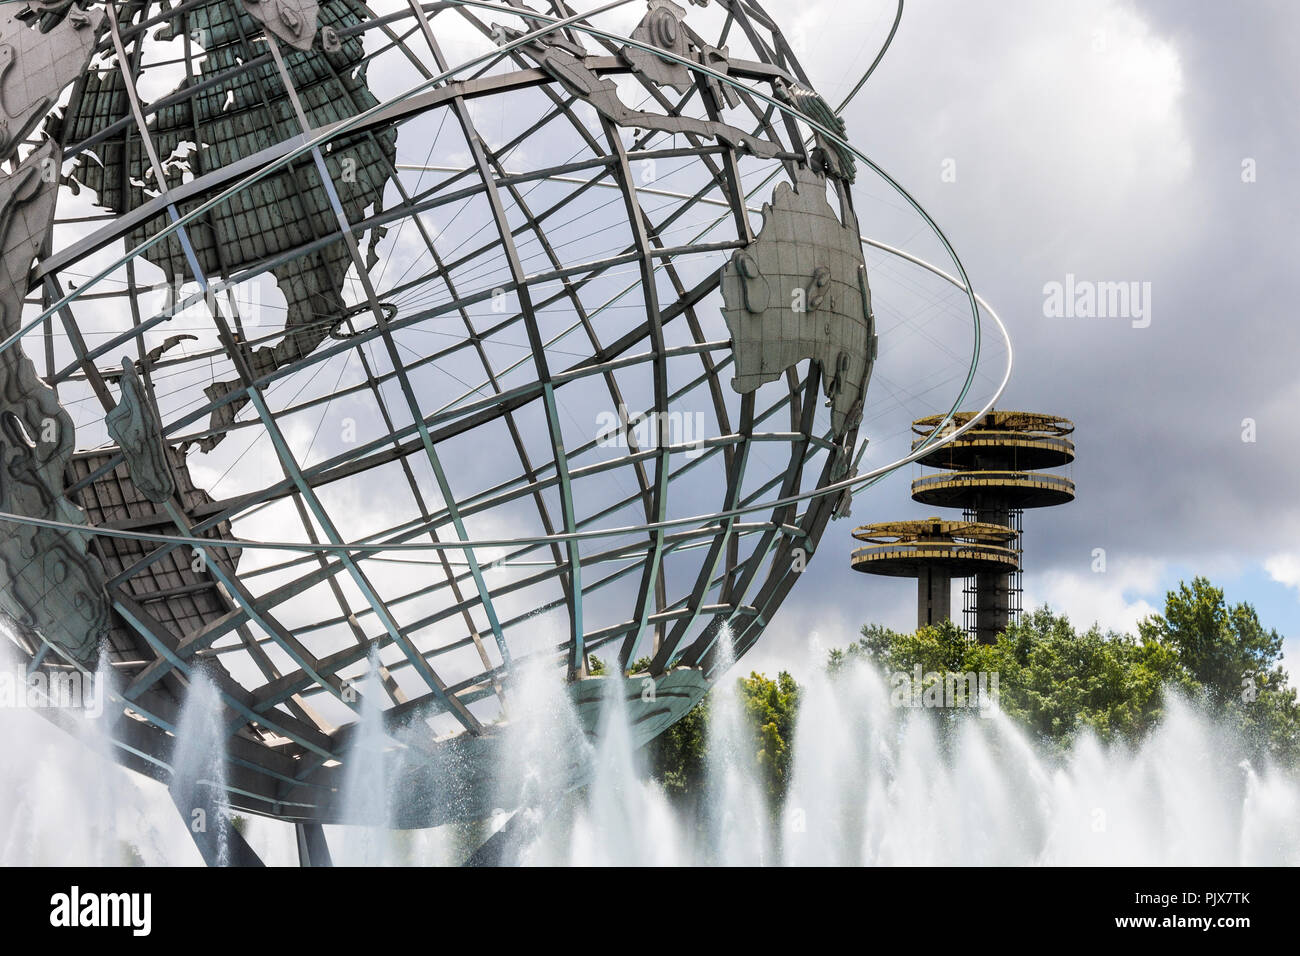 New York City. The Unisphere, a spherical stainless steel representation of the Earth in Flushing Meadows Corona Park, Queens, with the observatory to - Stock Image